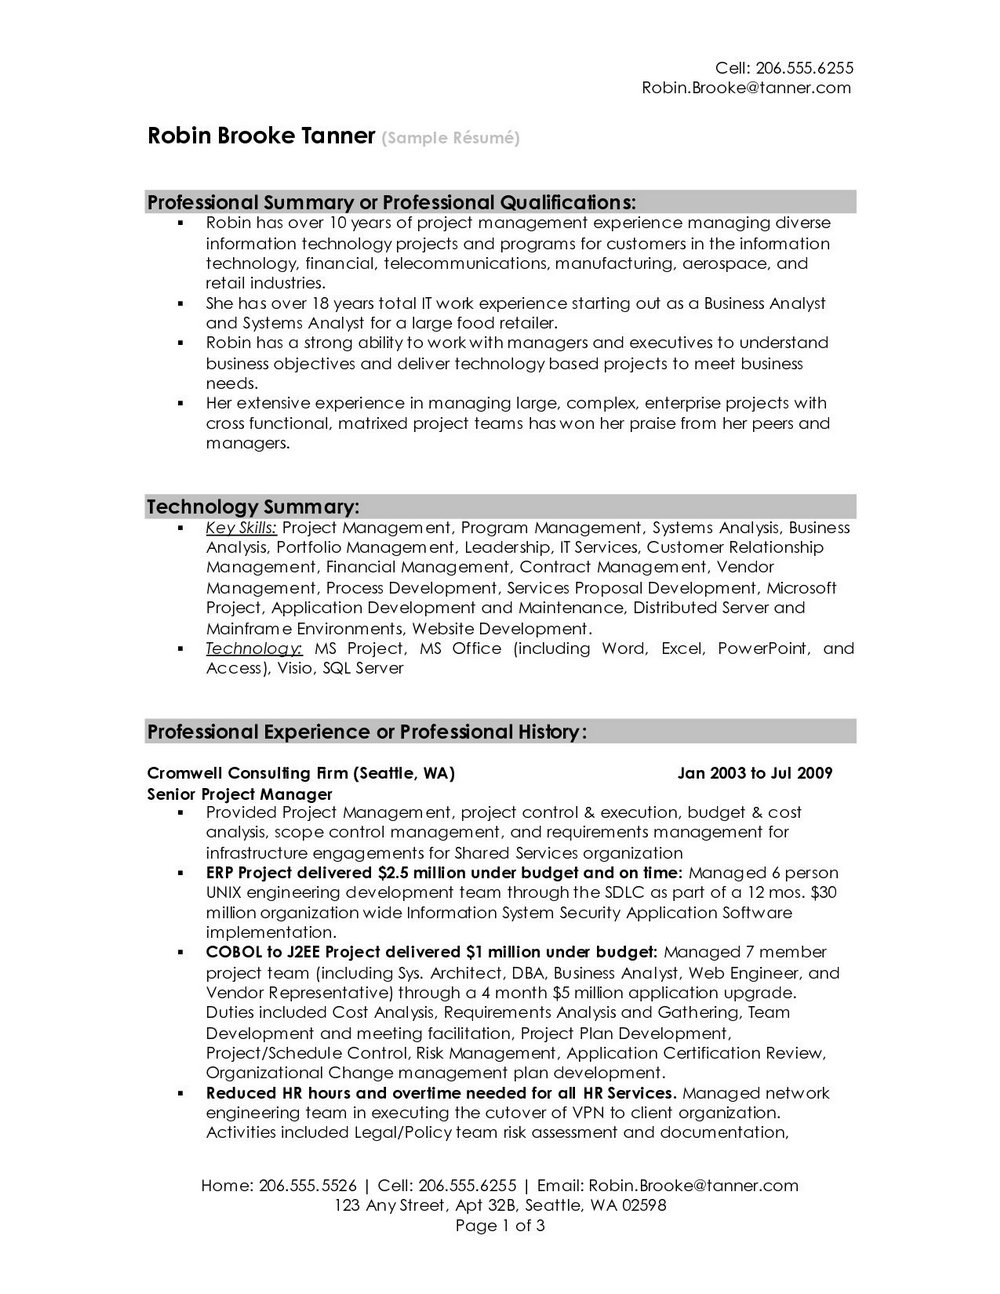 Resume Templates For Professionals